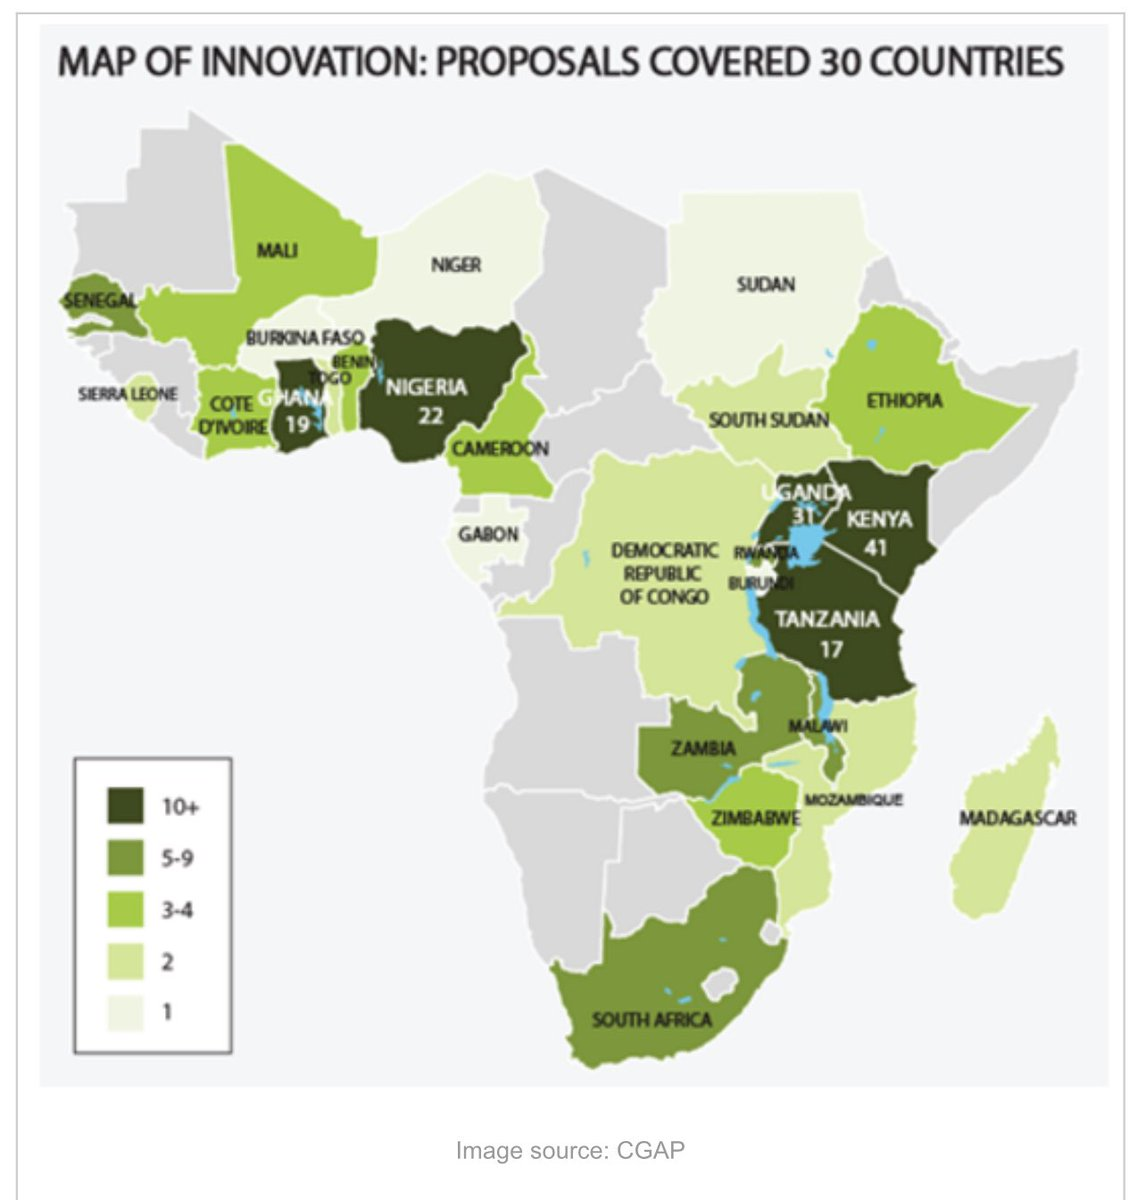 #Kenya leads #Africa in financial #inclusion #innovation  http://www. bankingtech.com/993342/kenya-l eads-africa-in-financial-inclusion-innovation/ &nbsp; …  @HaahrMarianne @NABAorg @MaiOldgard @ettesvoll @AmondiRM<br>http://pic.twitter.com/9EHx1Ds614